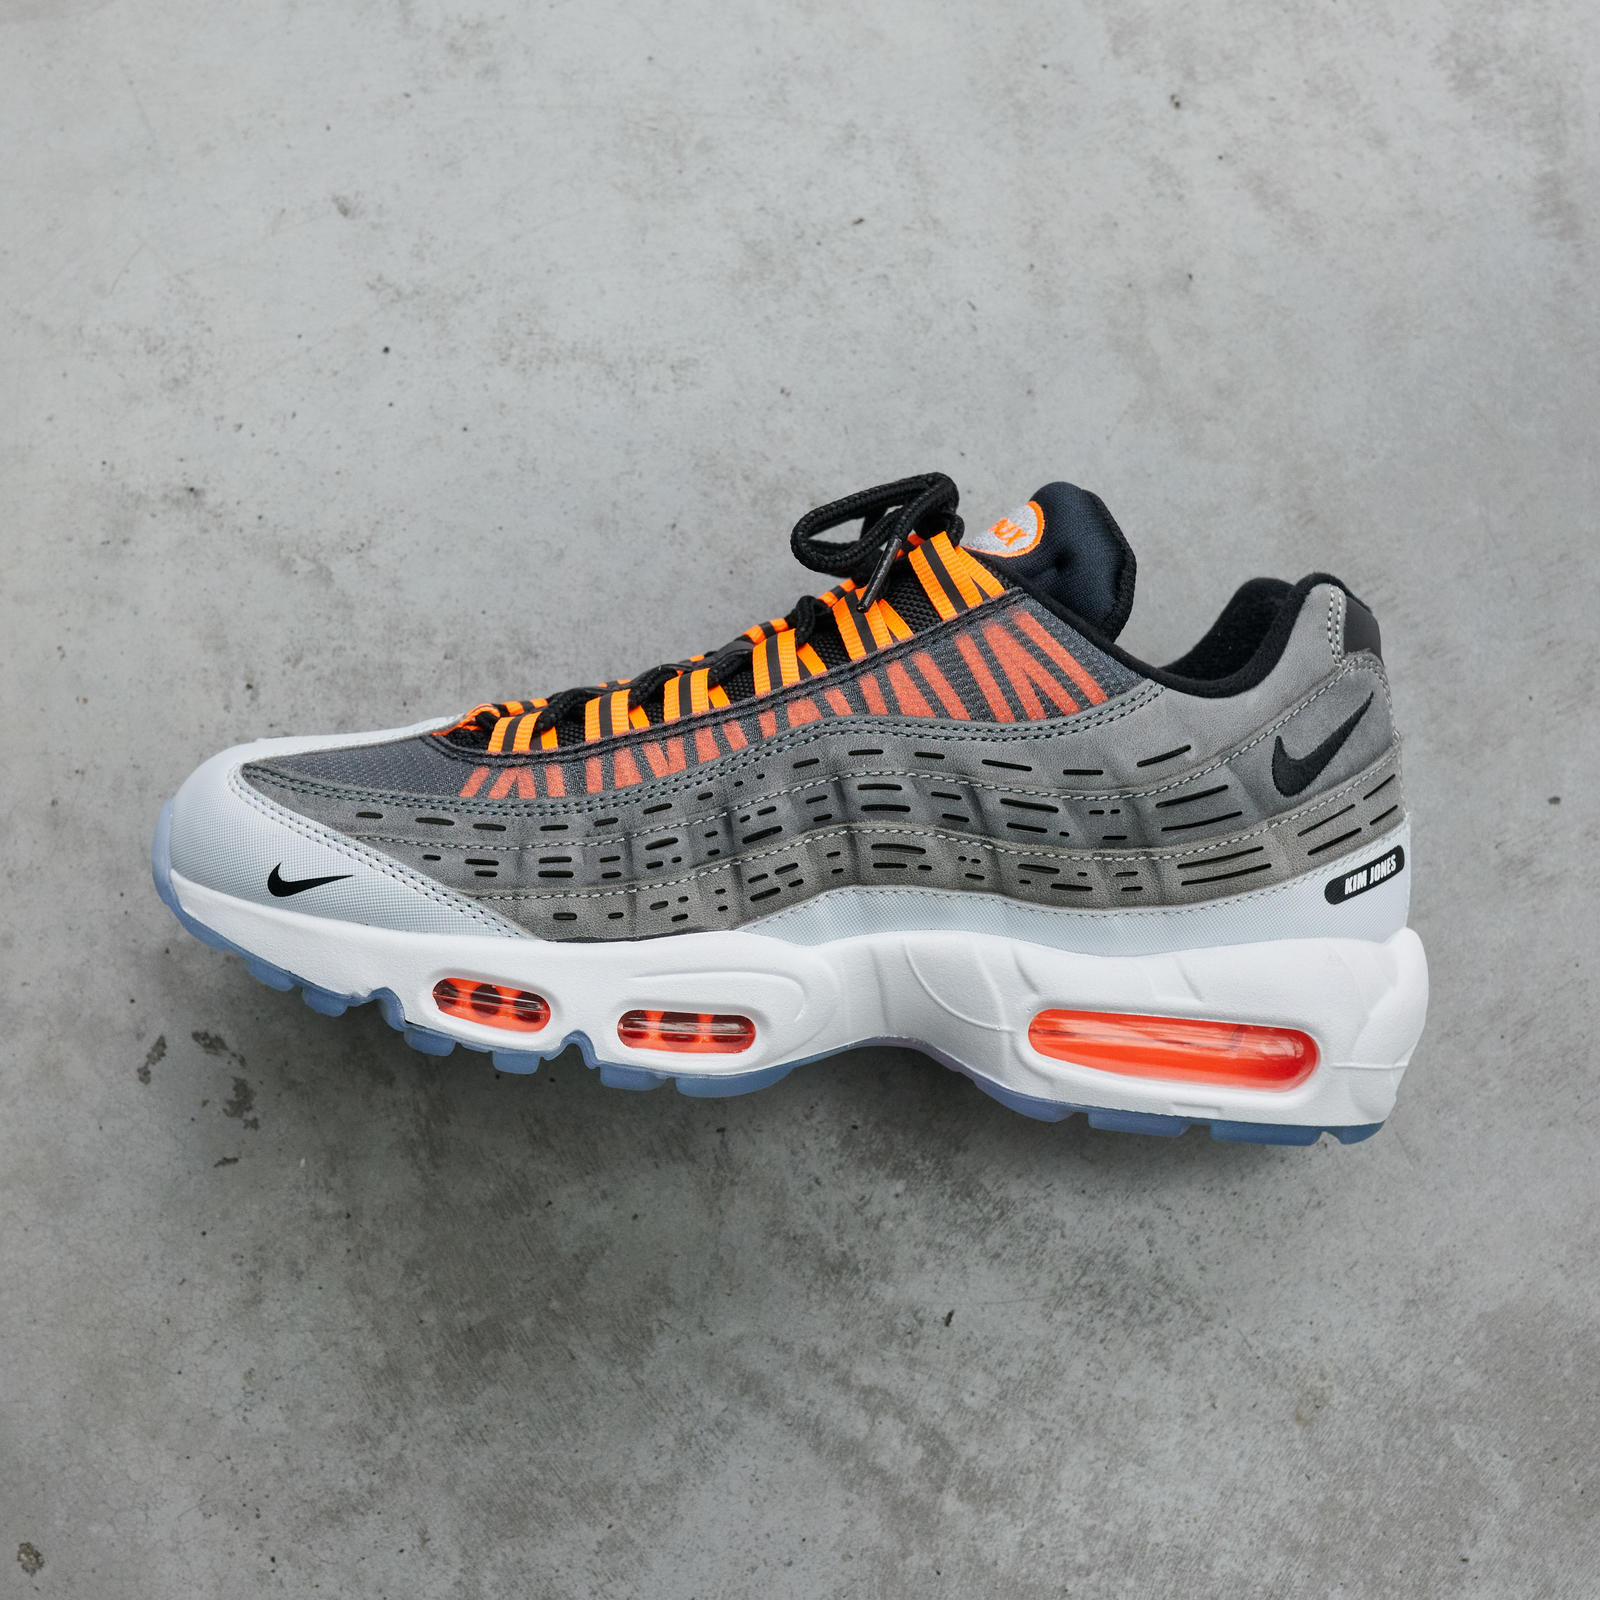 Kim Jones is passionate about his newest Nike collaboration - the Air Max 95